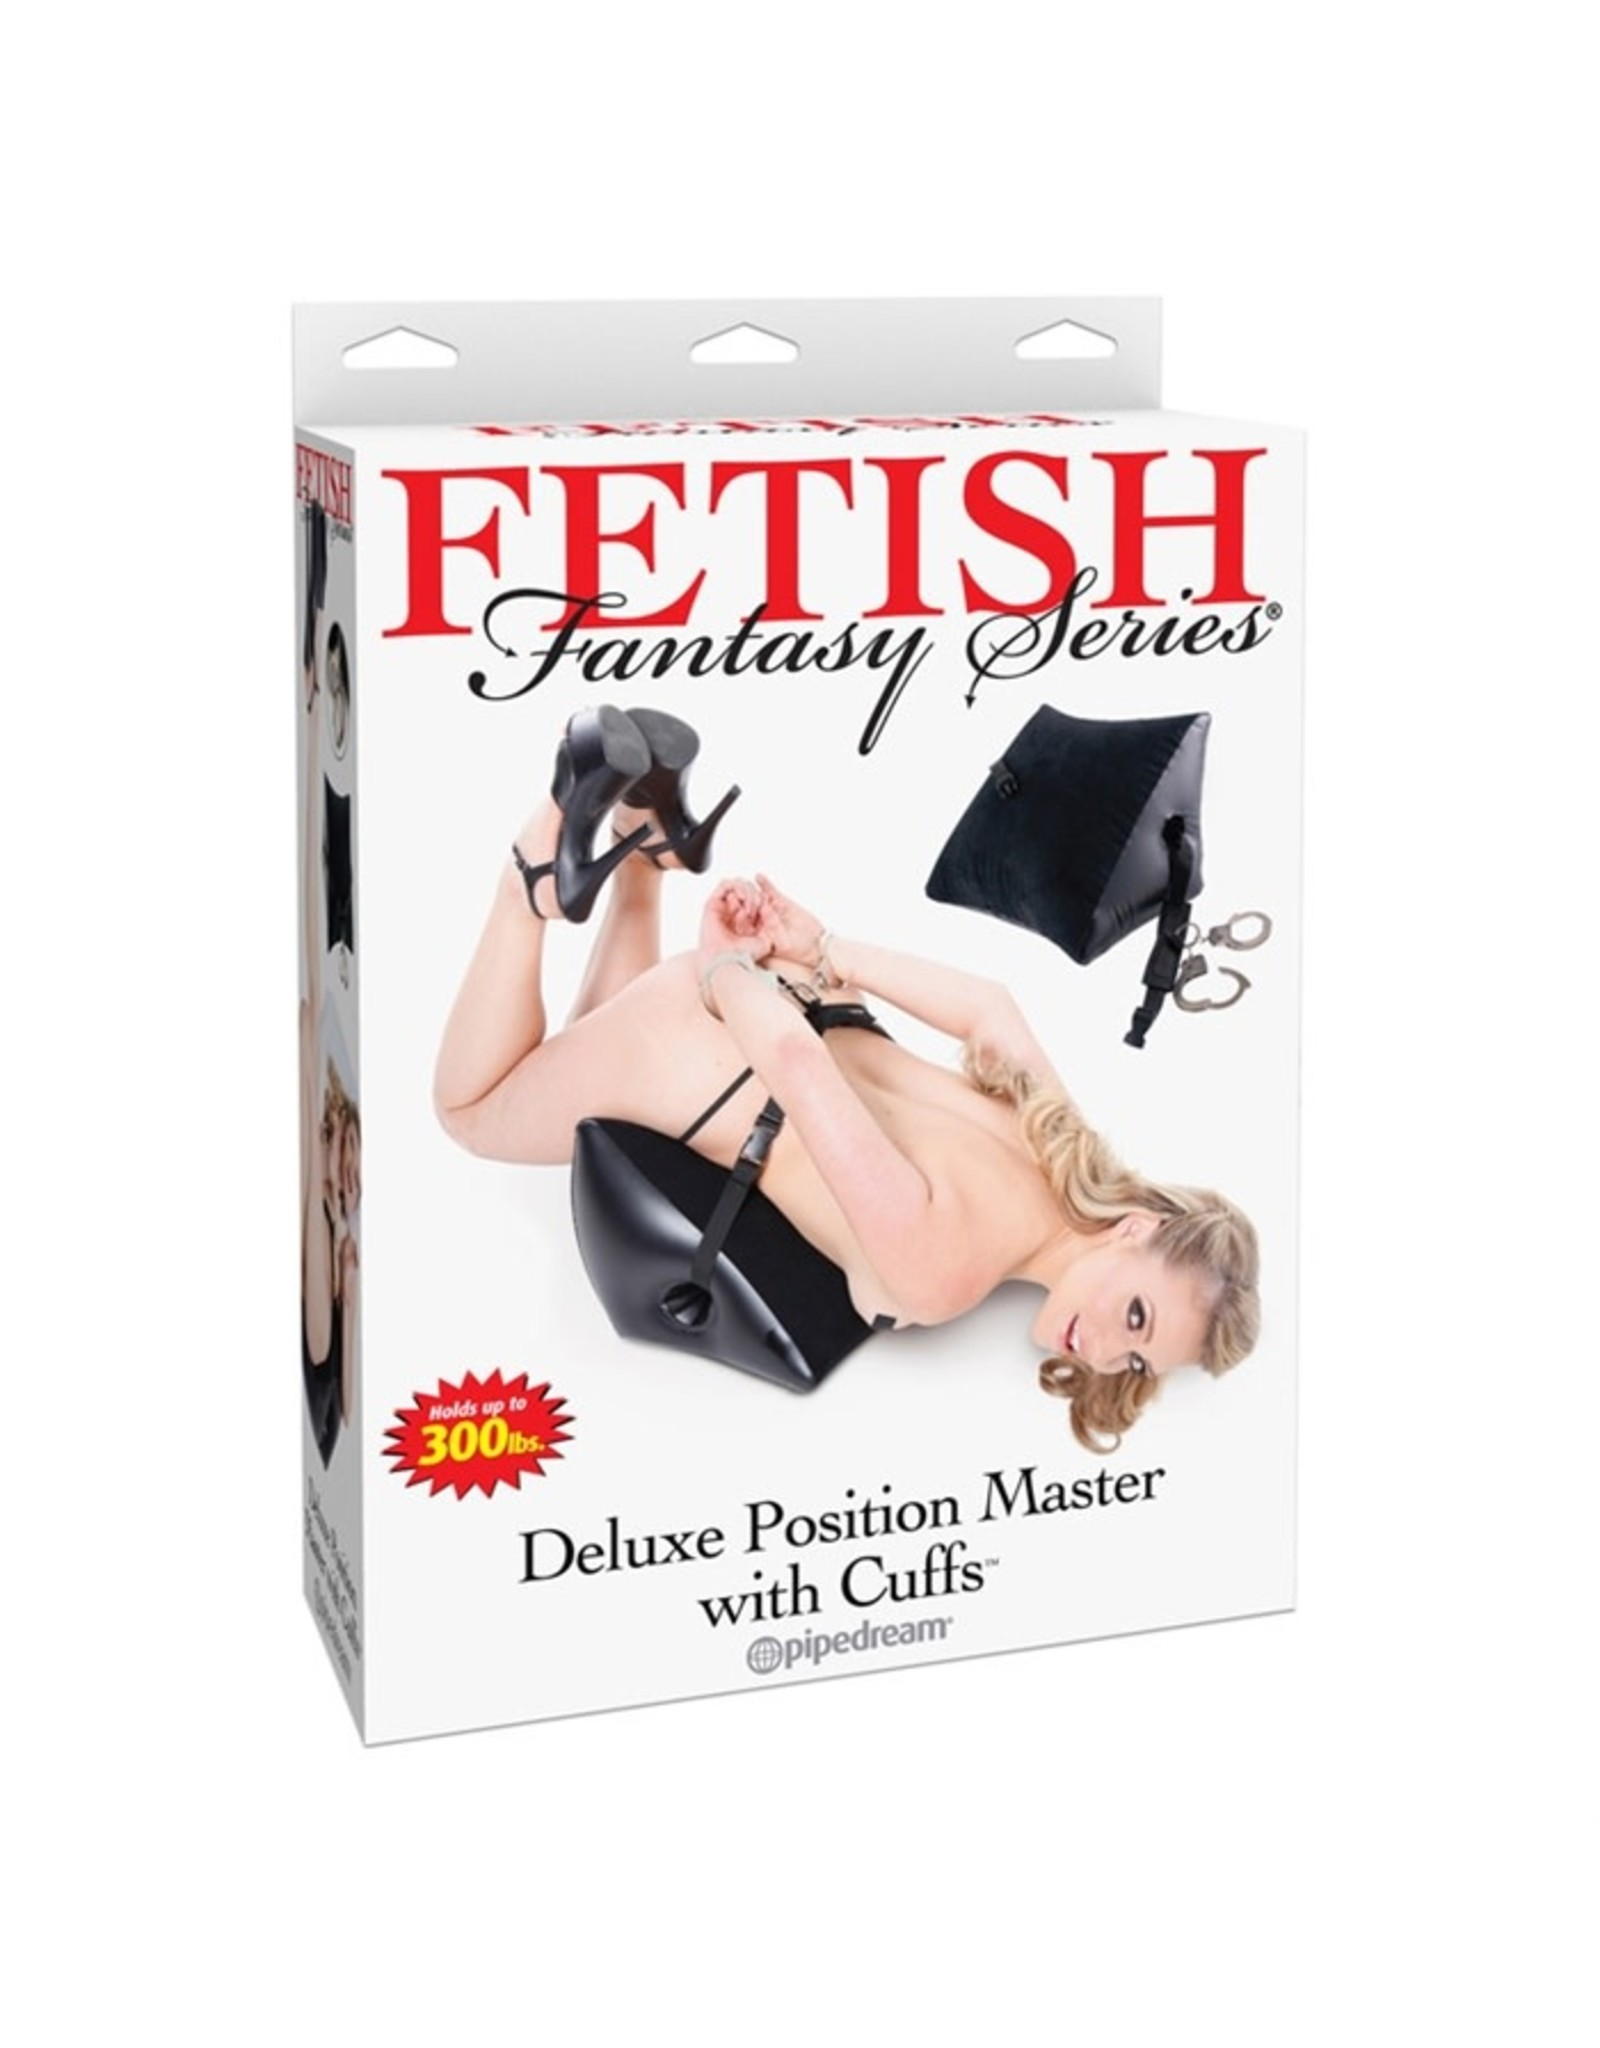 Pipedream Fetish Fantasy Series - Deluxe Position Master with Cuffs